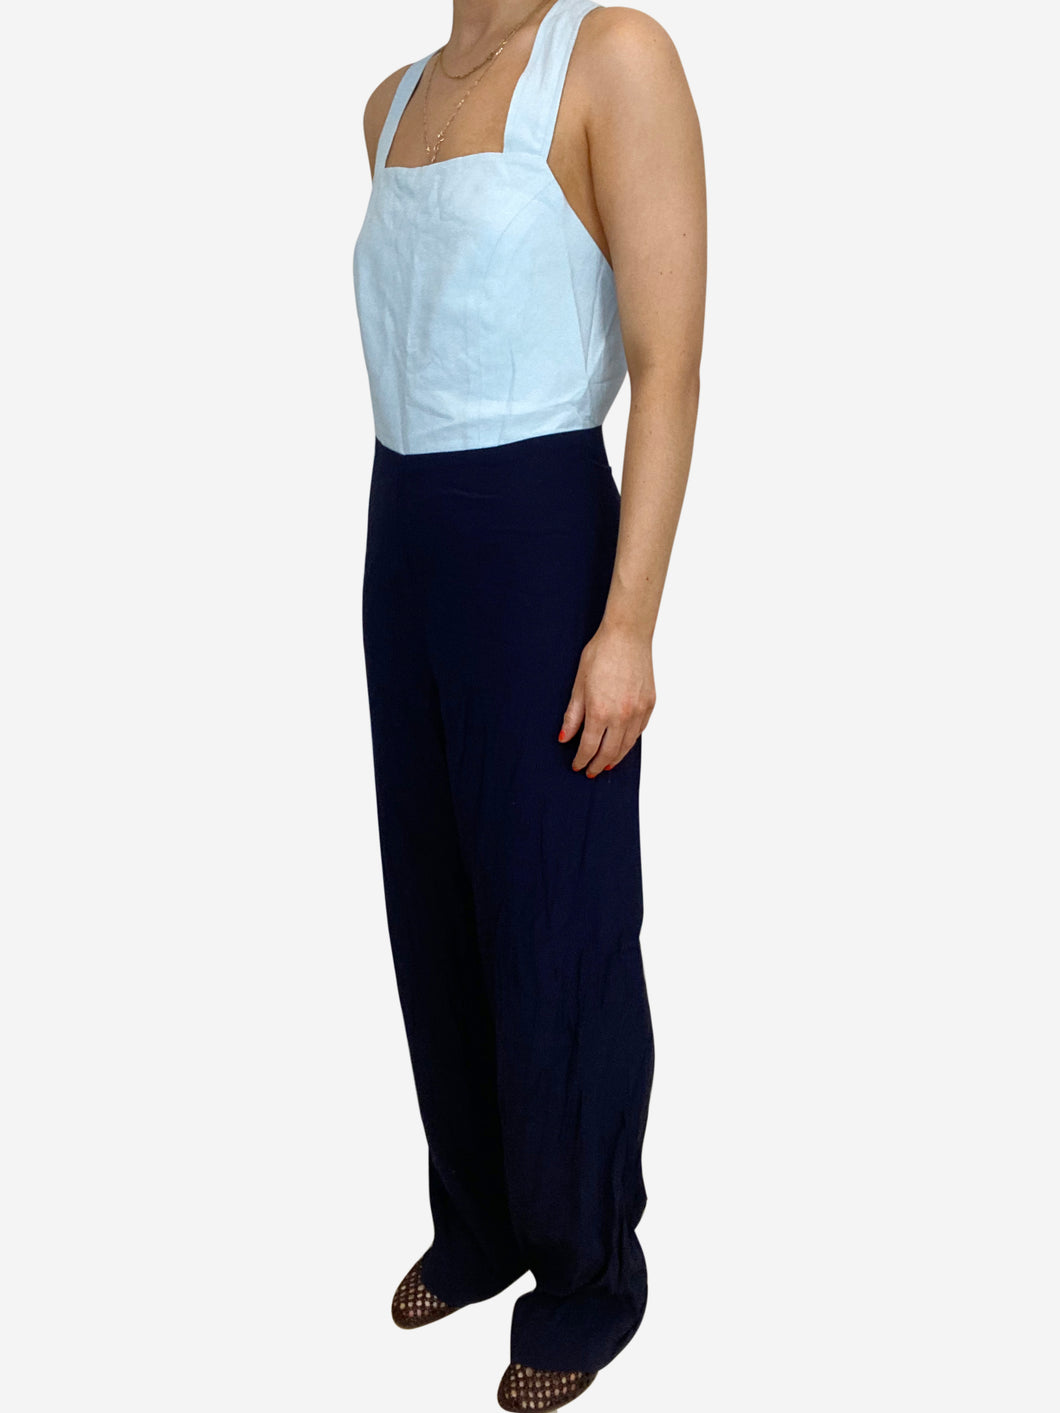 Navy & light blue cross back jumpsuit - size S